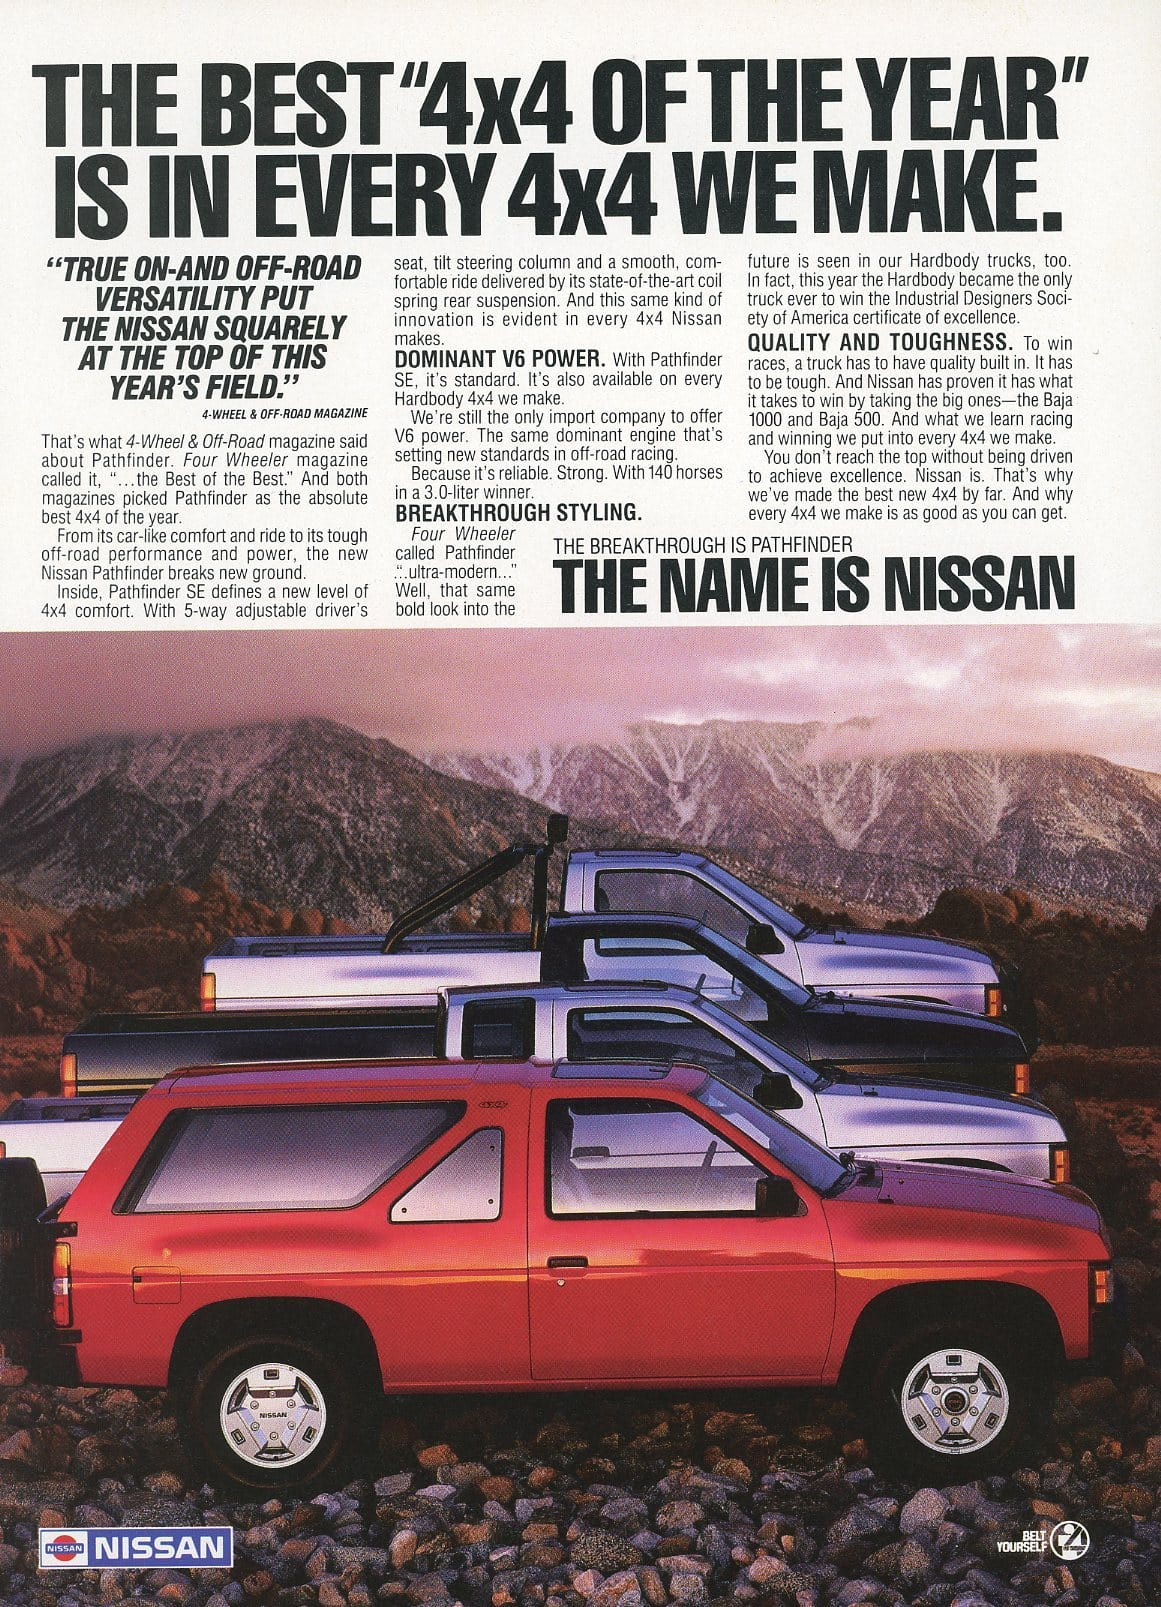 1980's Nissan Trucks Advertisement - Gift For Him - Man Cave Wall Hanging